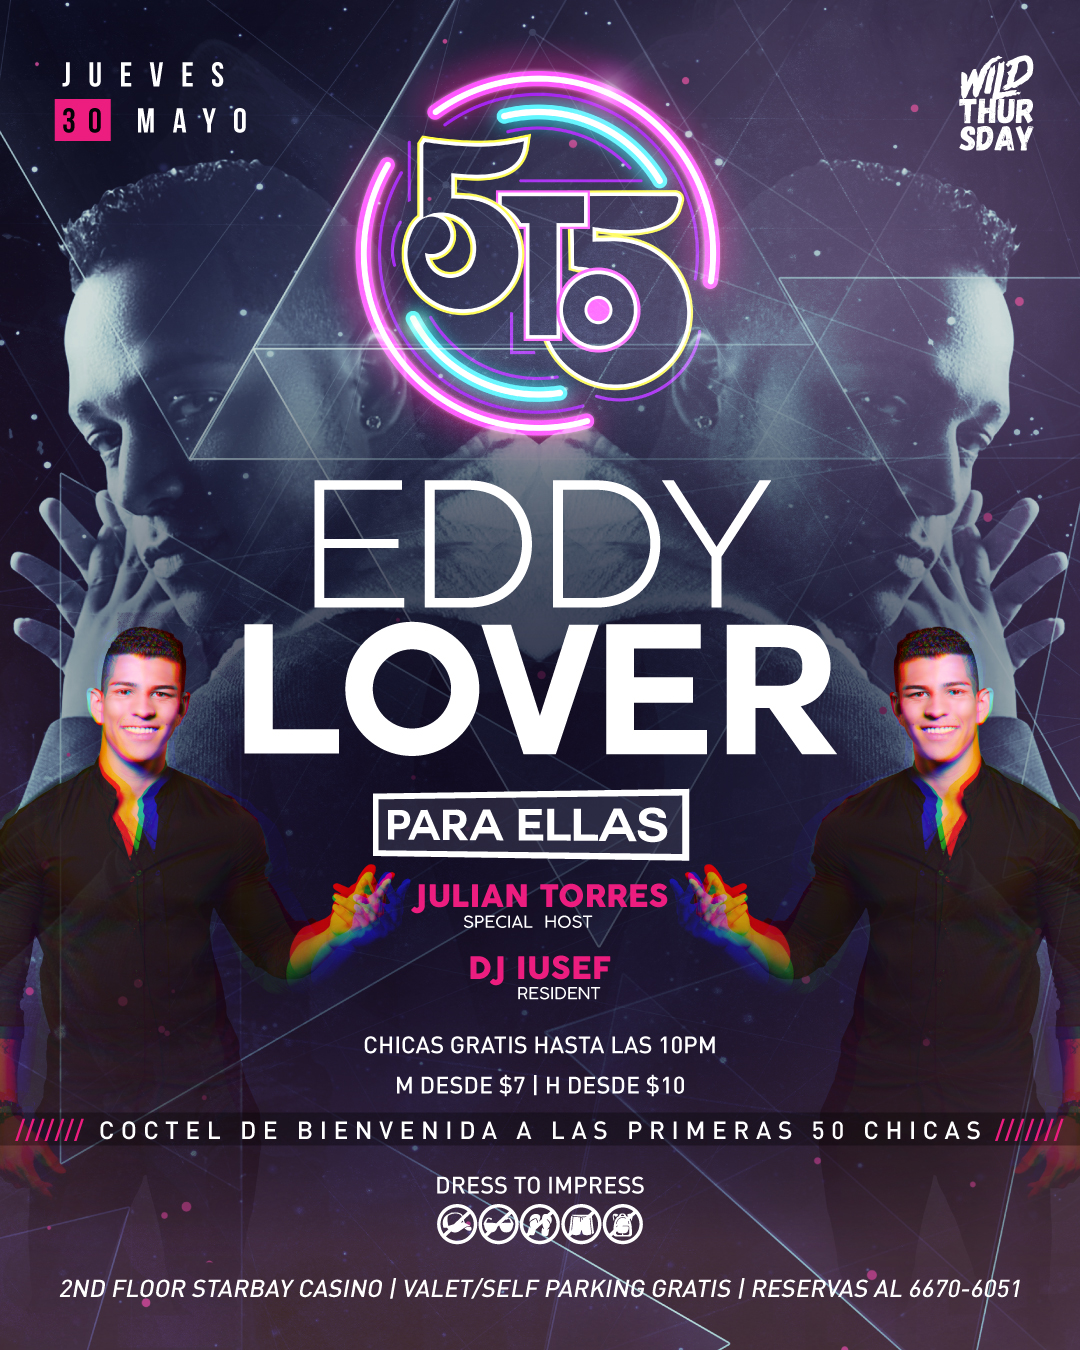 Photo of 'Eddy Lover' estará en 5to5 Panamá